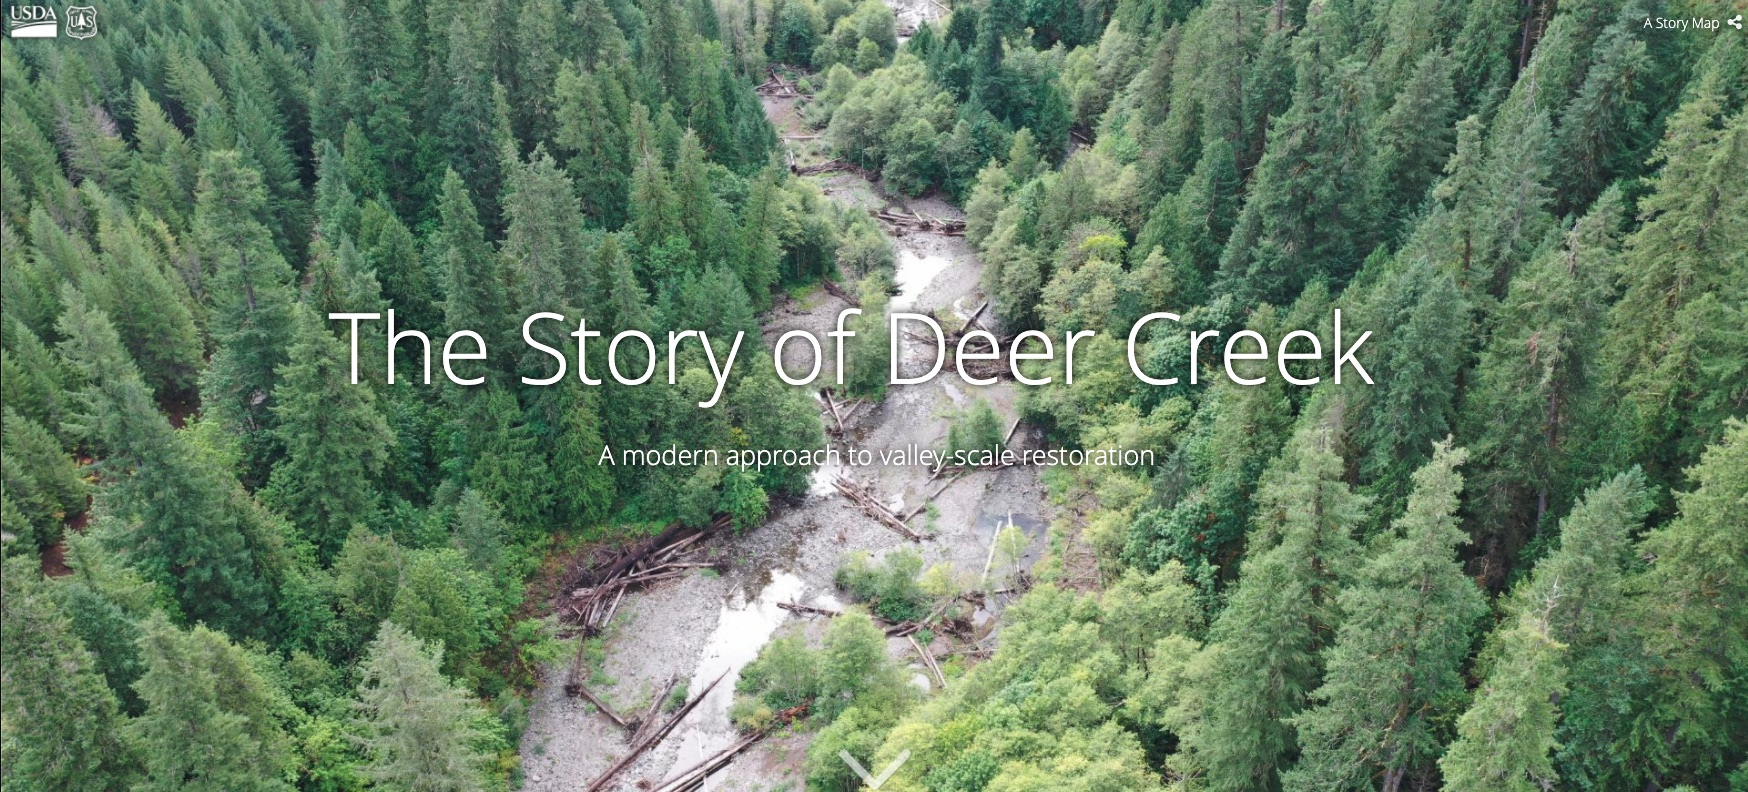 deer creek restoration - mckenzie river, Oregon